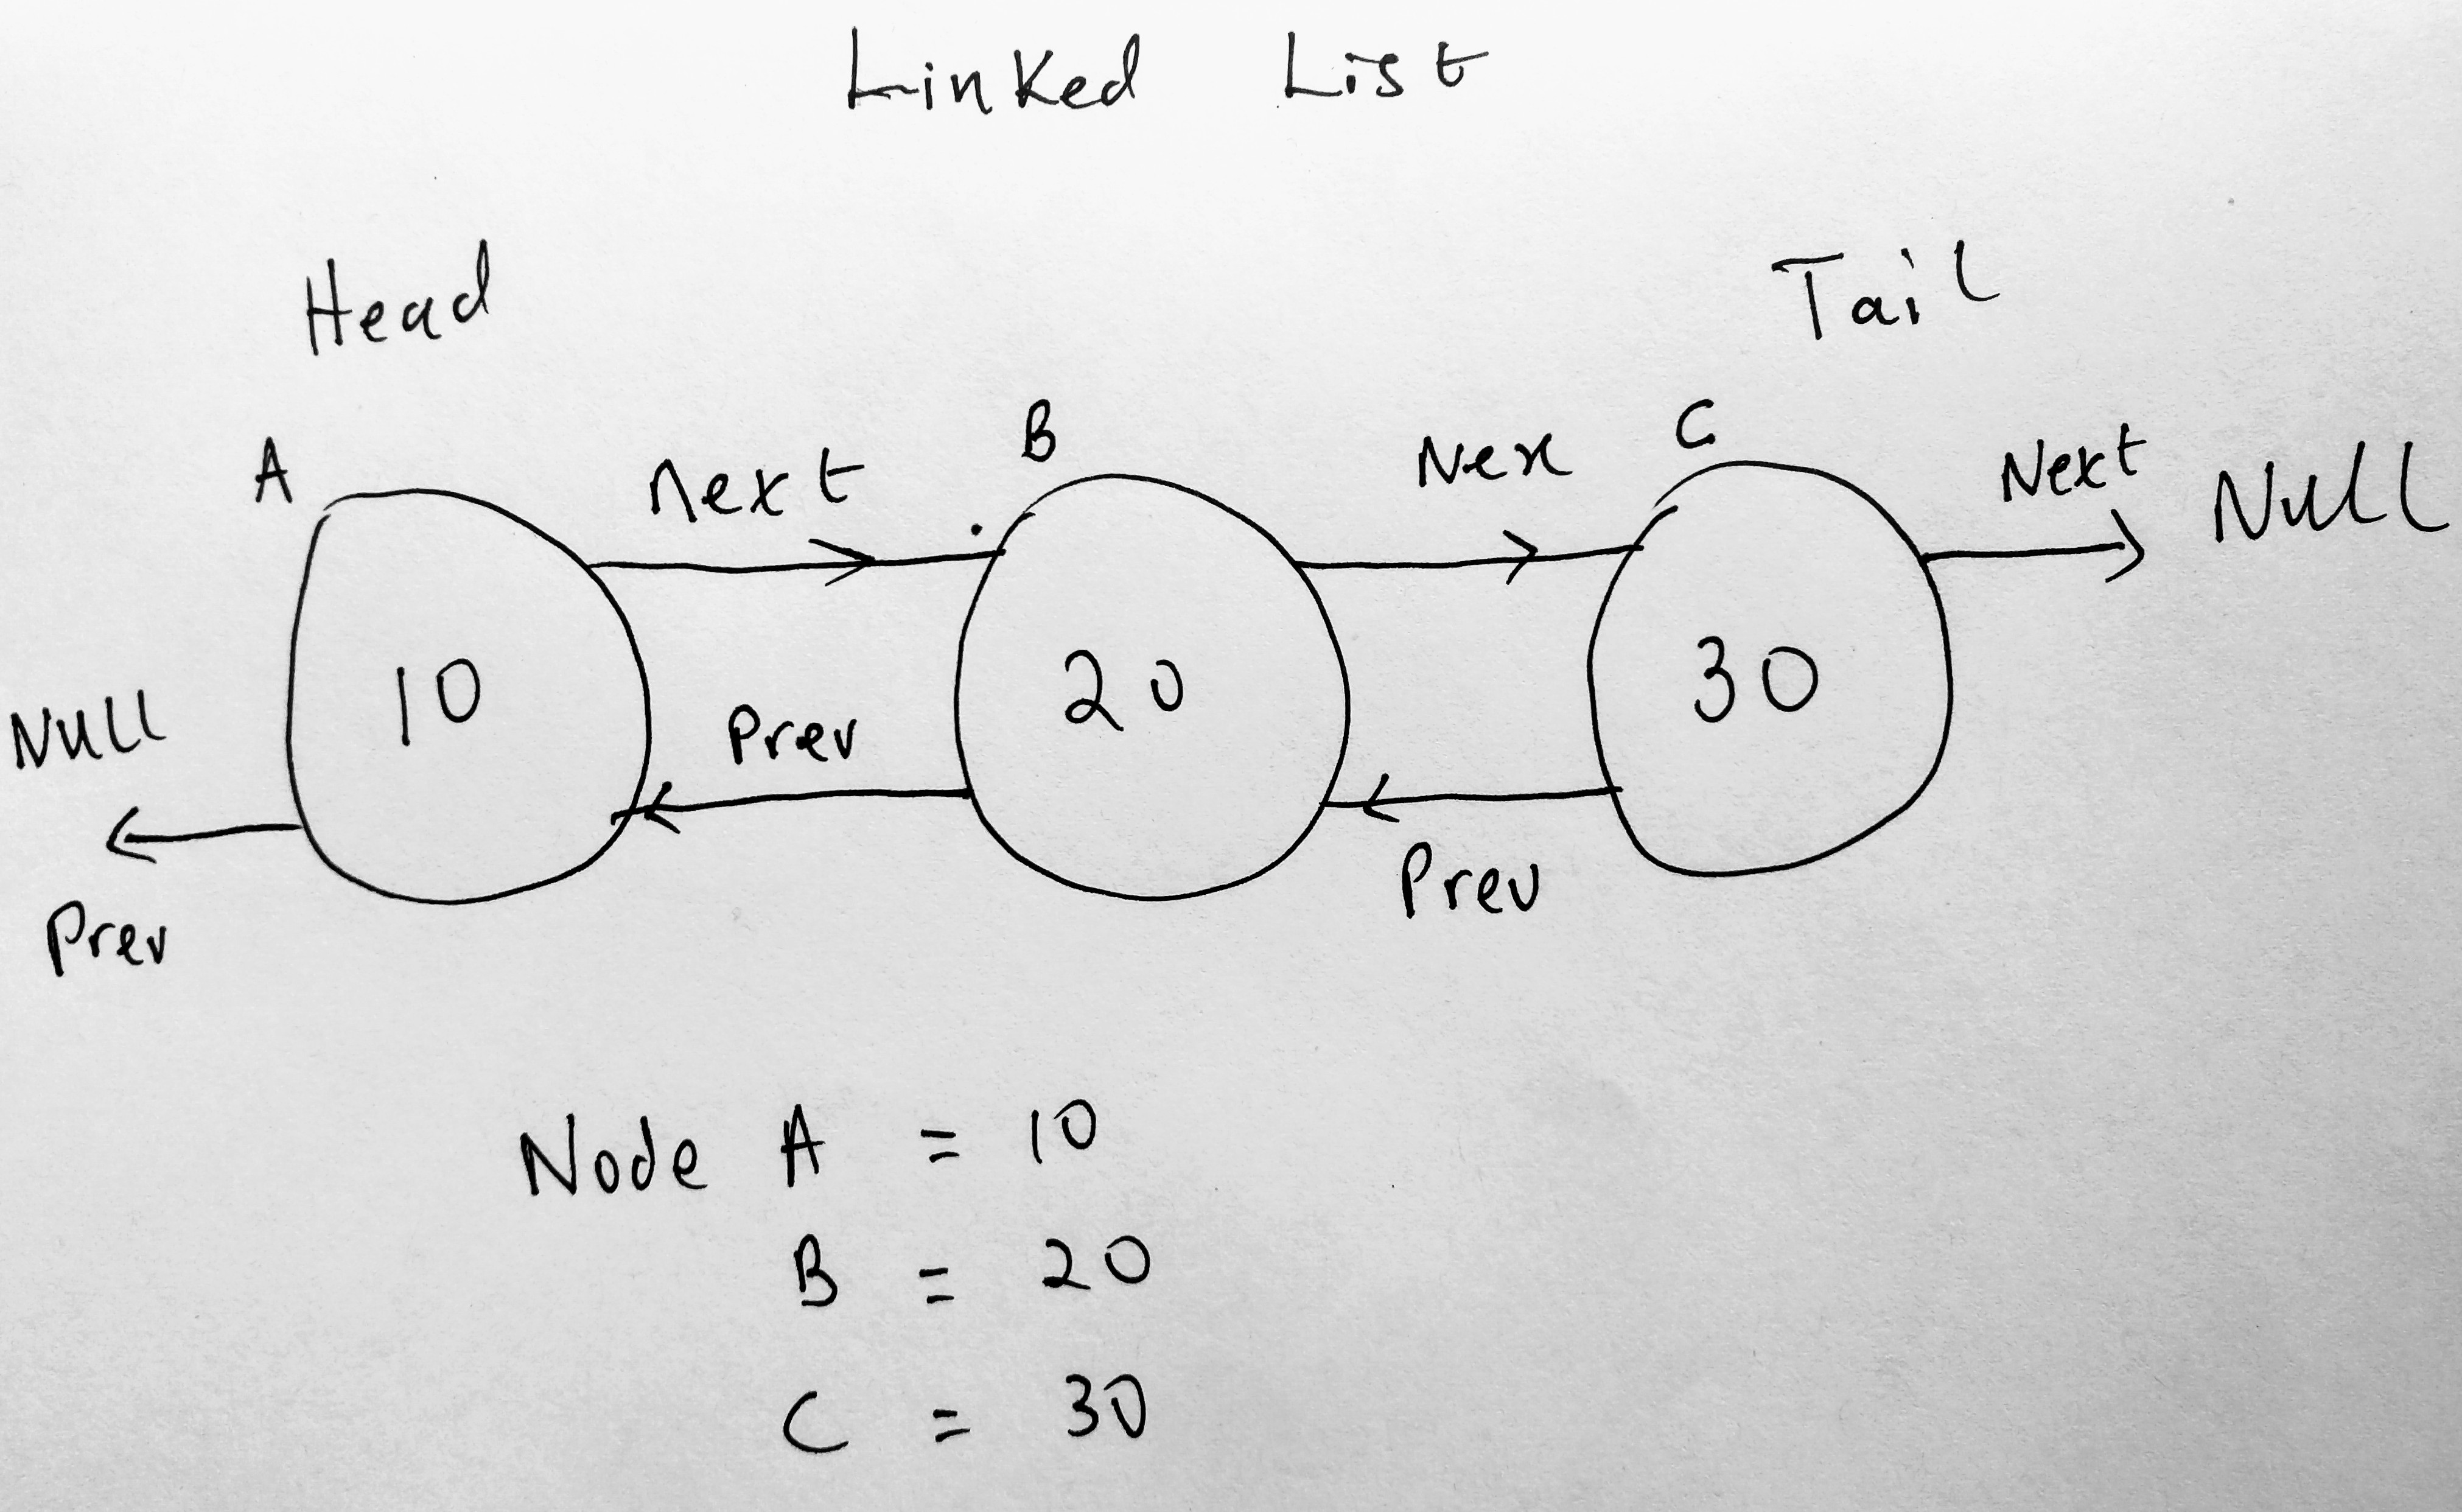 doubly linked list collection